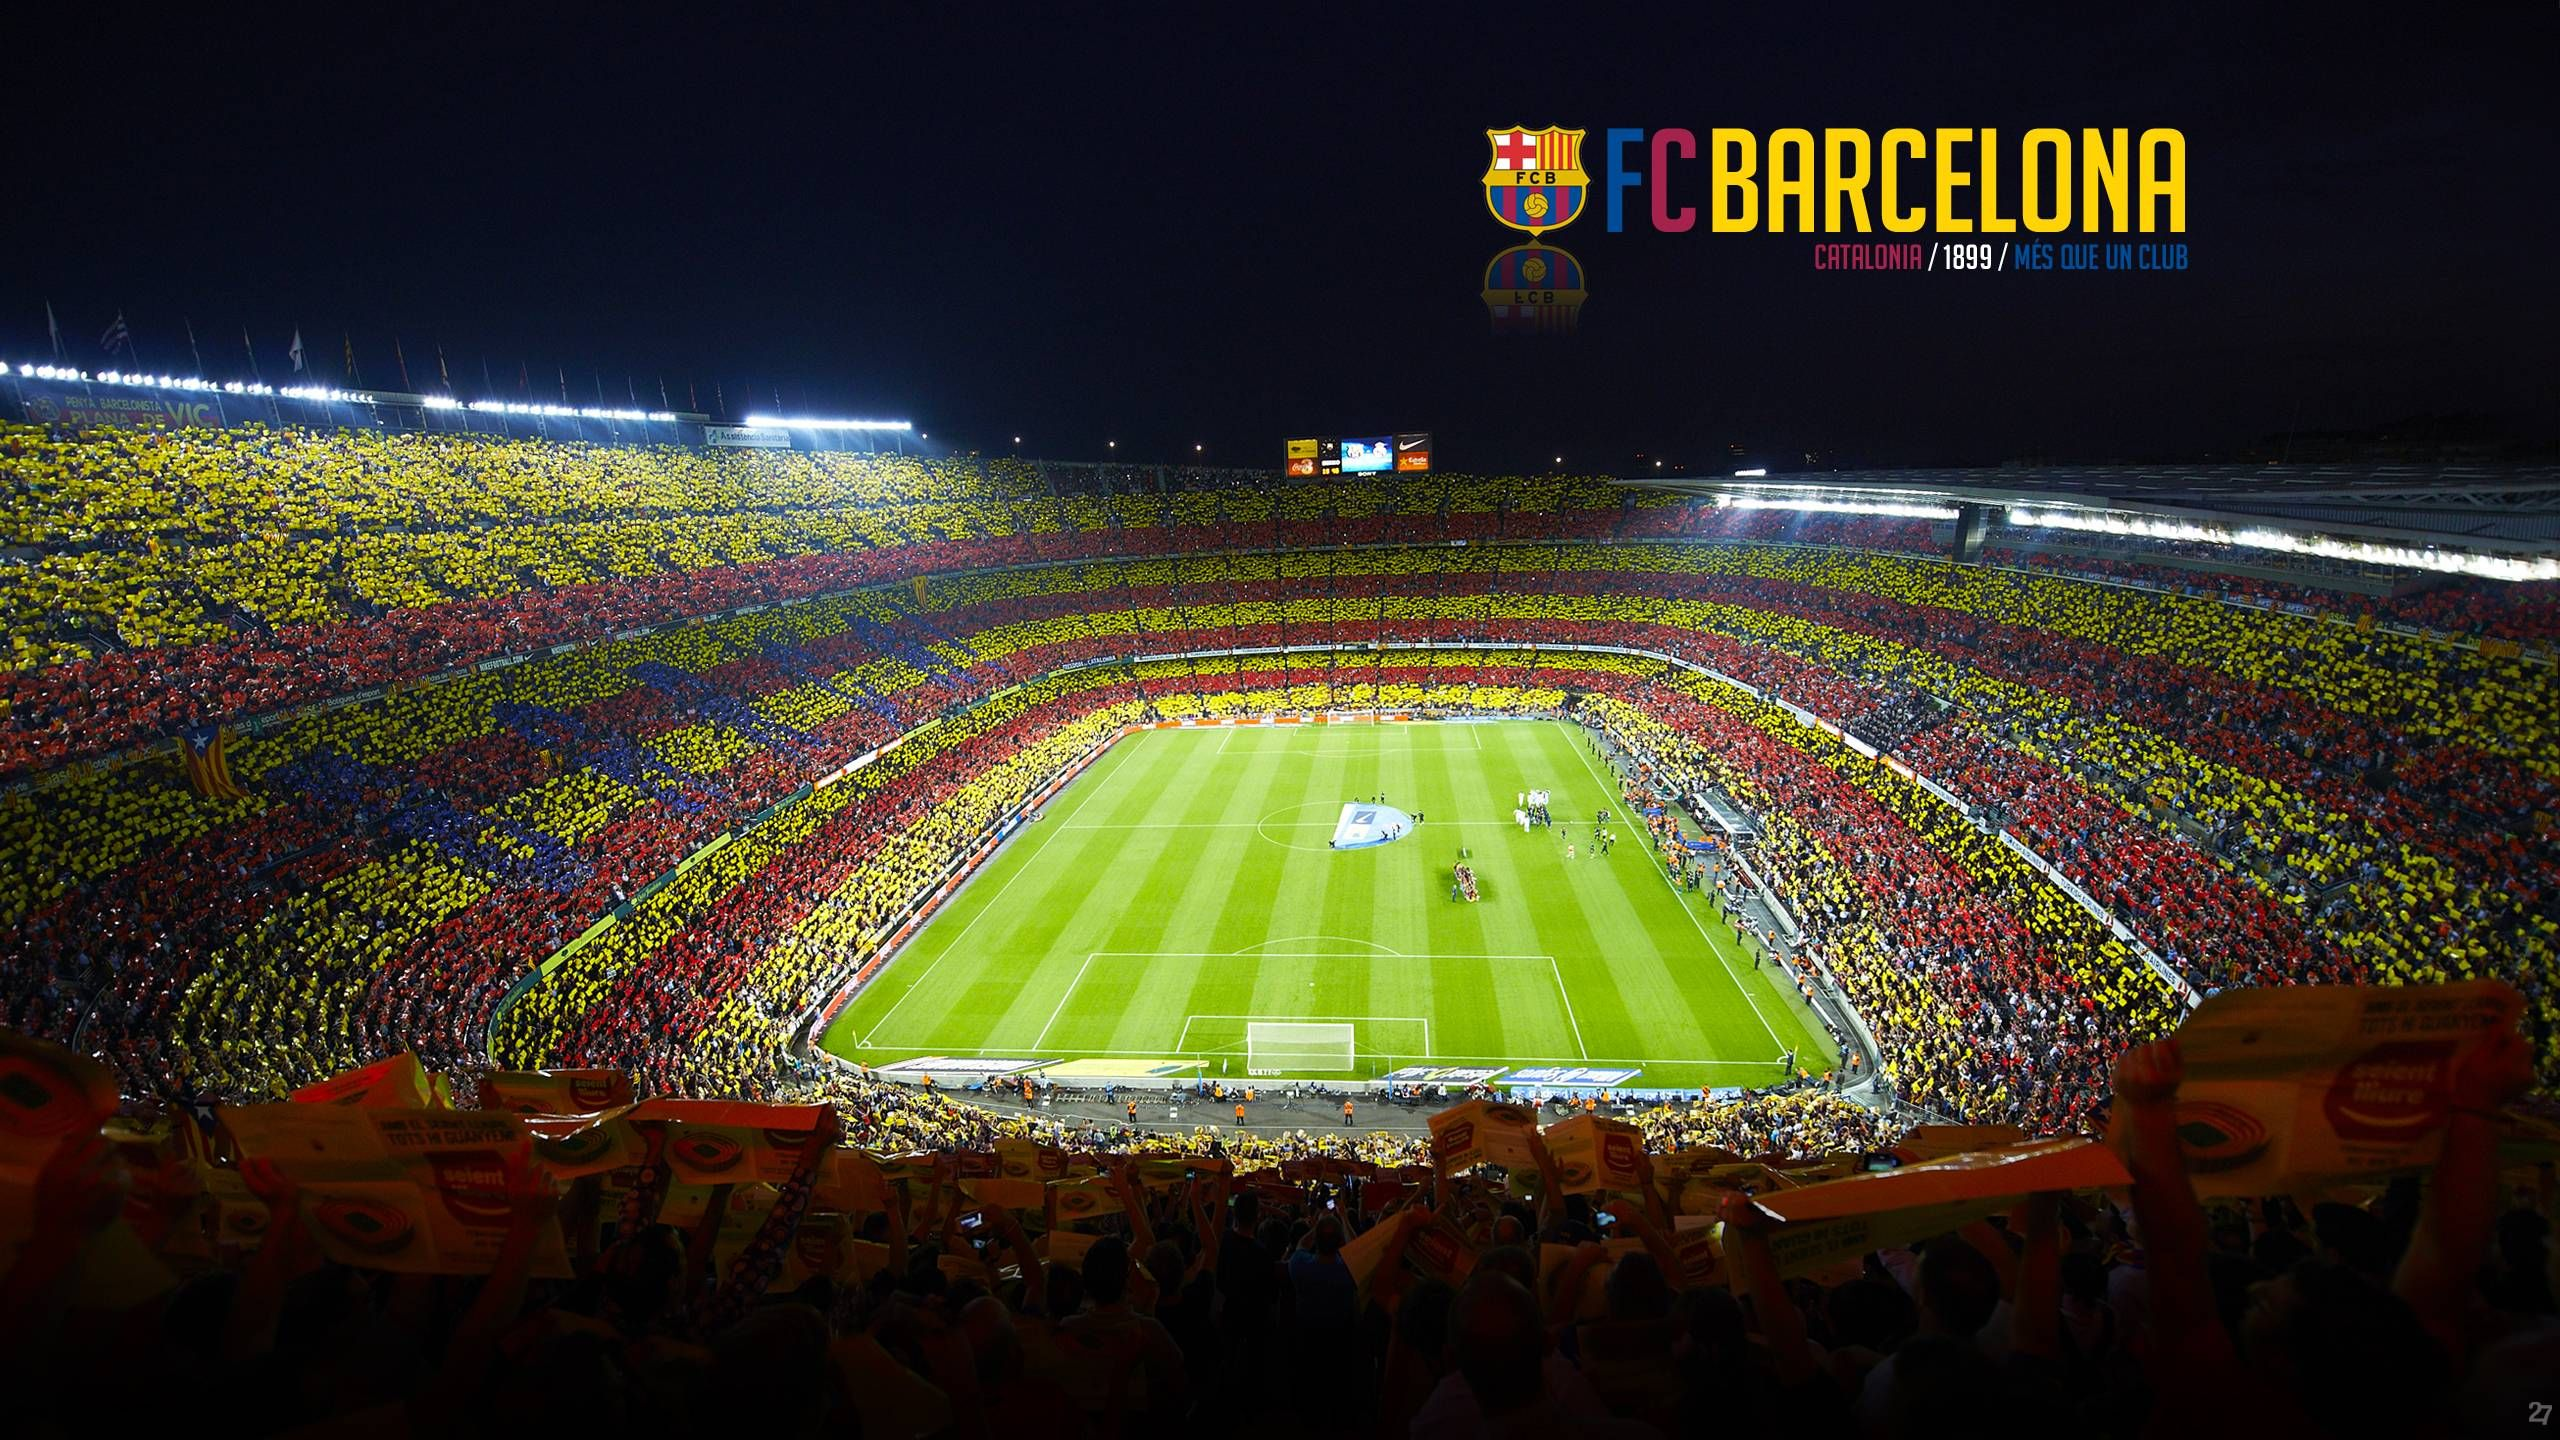 Camp nou wallpapers wallpaper cave android pinterest camp camp nou wallpapers wallpaper cave voltagebd Gallery